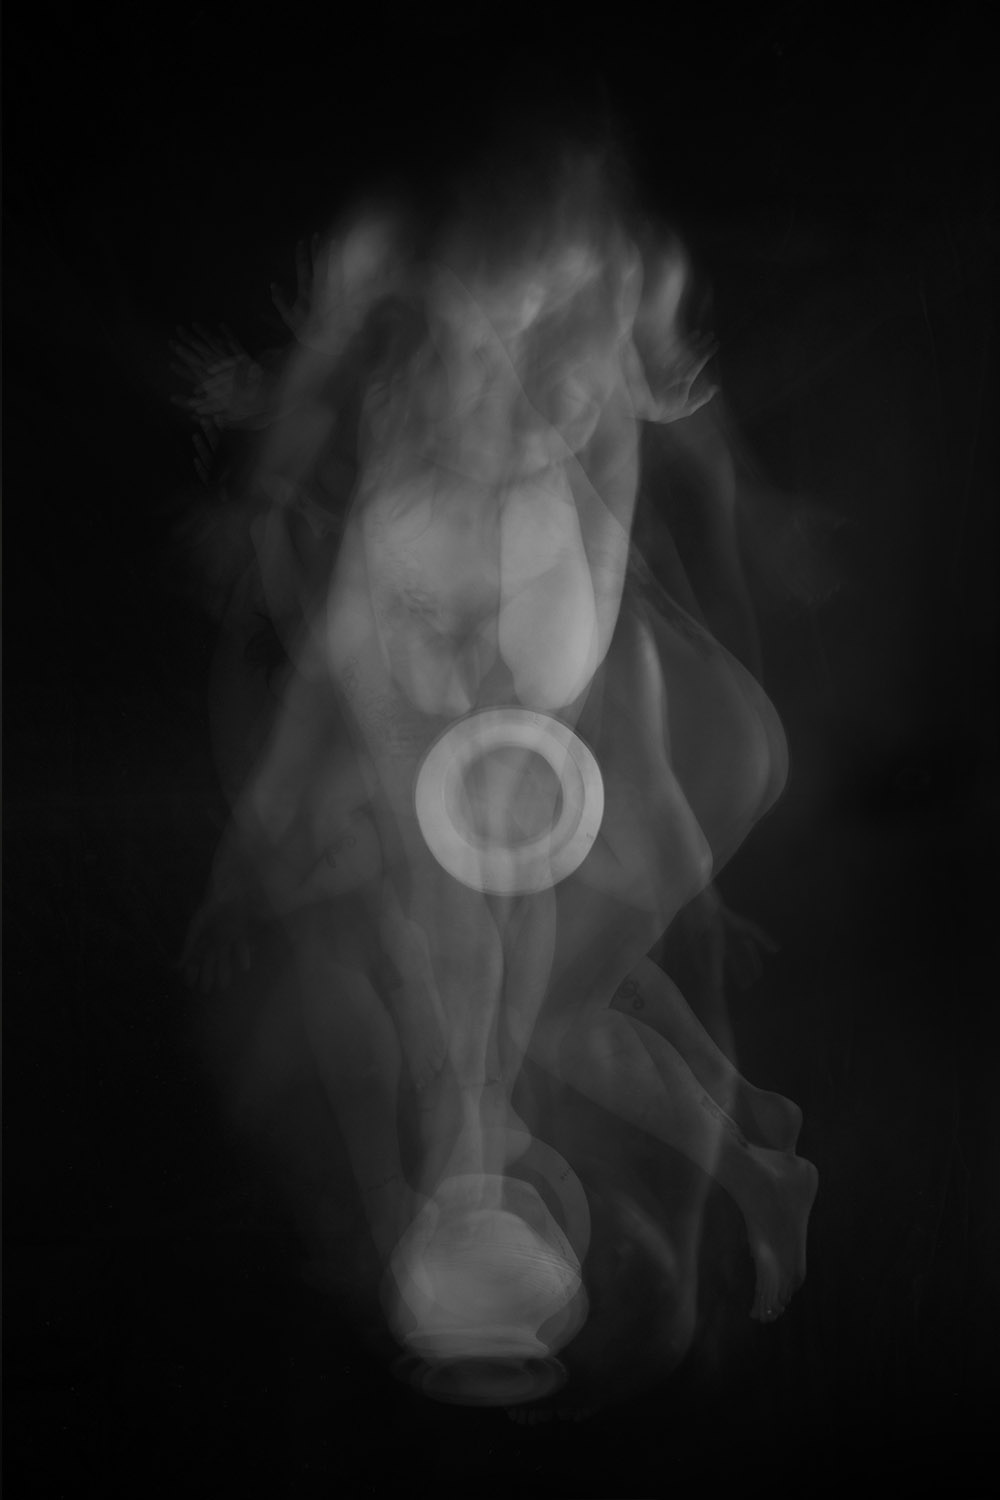 Carla Janse van Rensburg Untitled (10 minute exposure of Protection Vase Consecration Ritual 1) 2018 digital photograph archival ink on Hahnemuhle, 1of20 35.5 x 24.2 cm